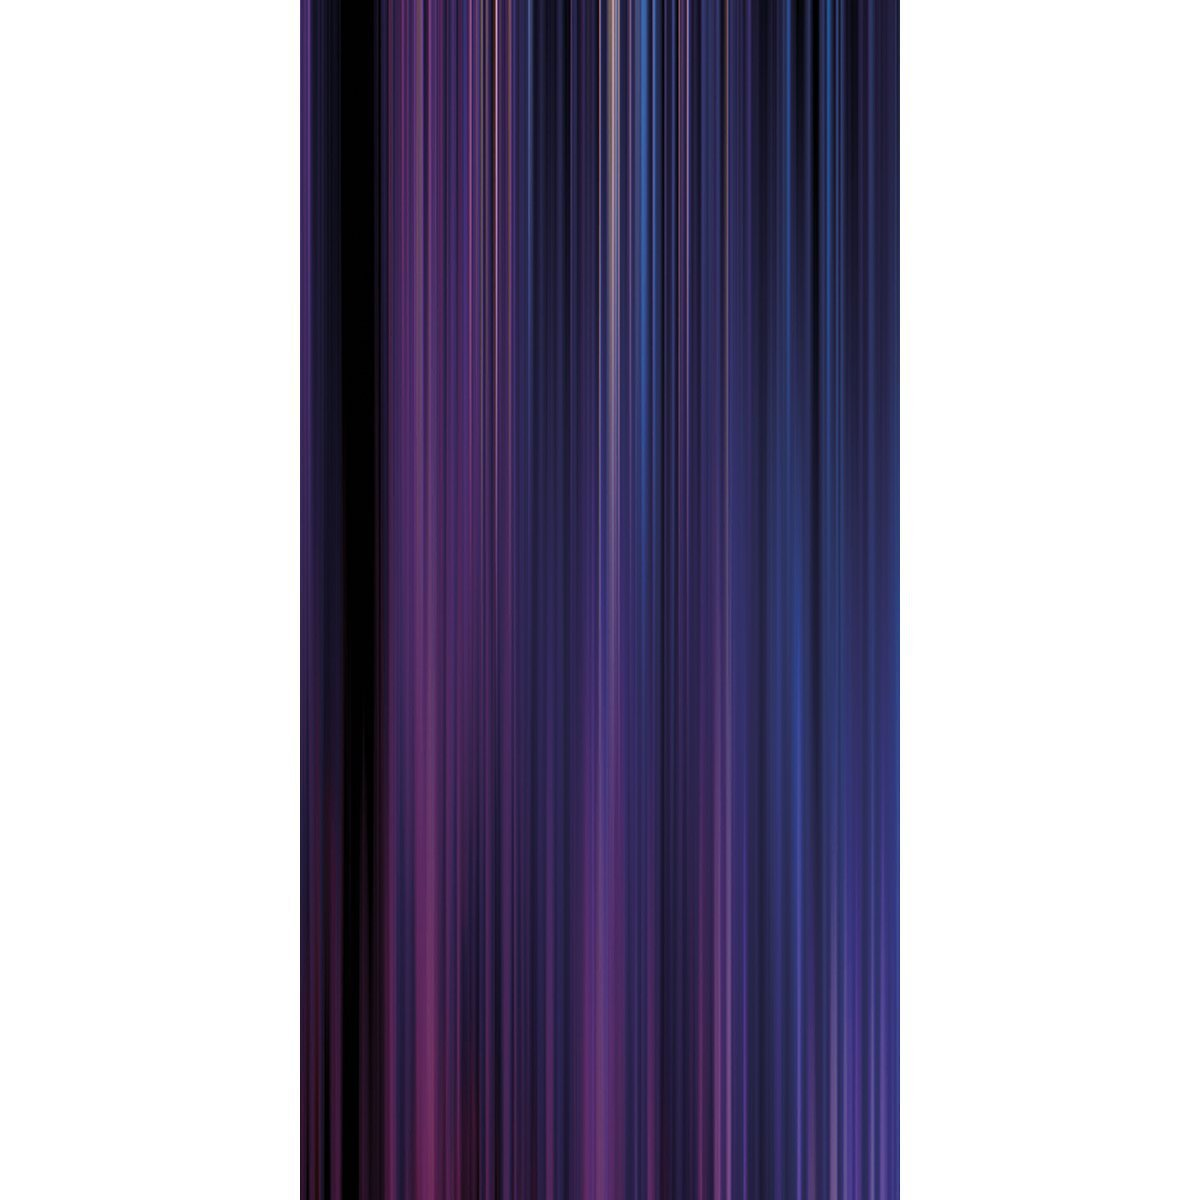 Wall Acoustics Panel 6 Muffle Abstract Mural - Kinetic Purple Panel 6